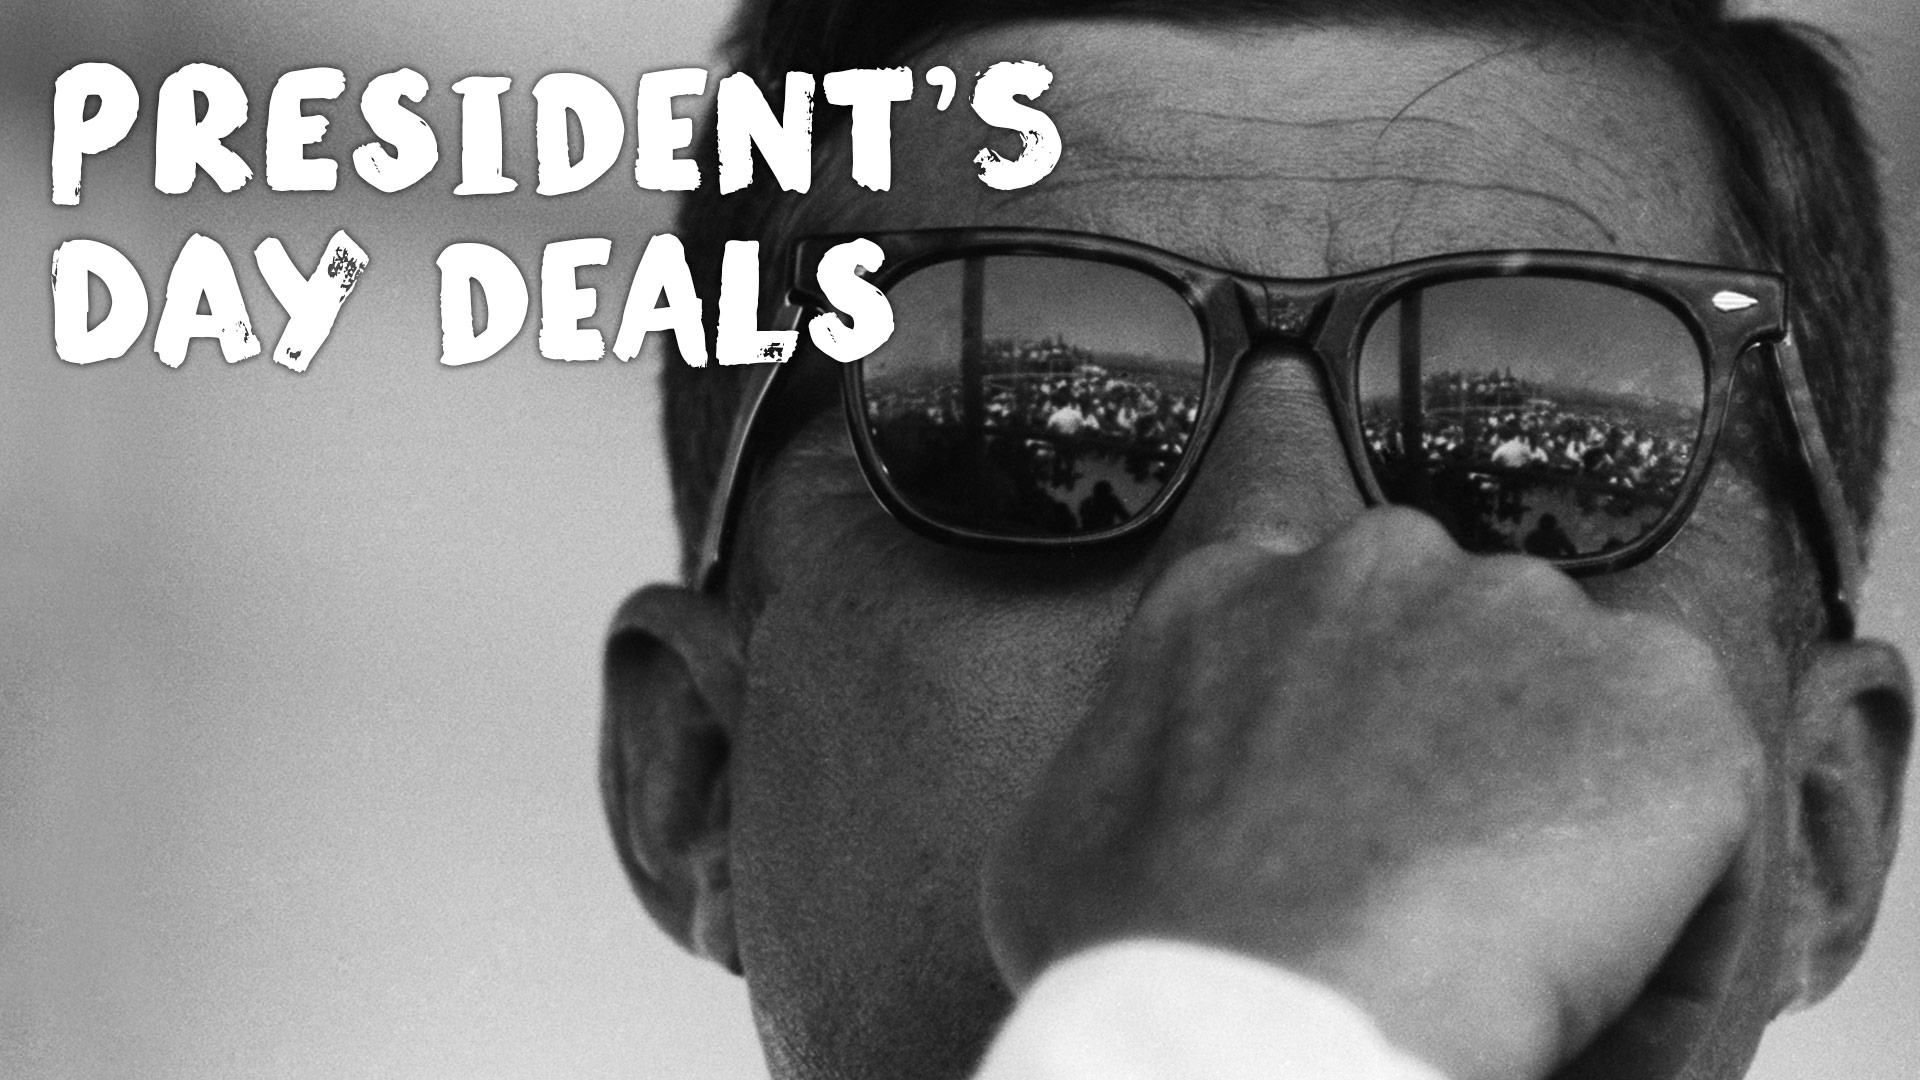 Let's Make a Presidents' Day Deal